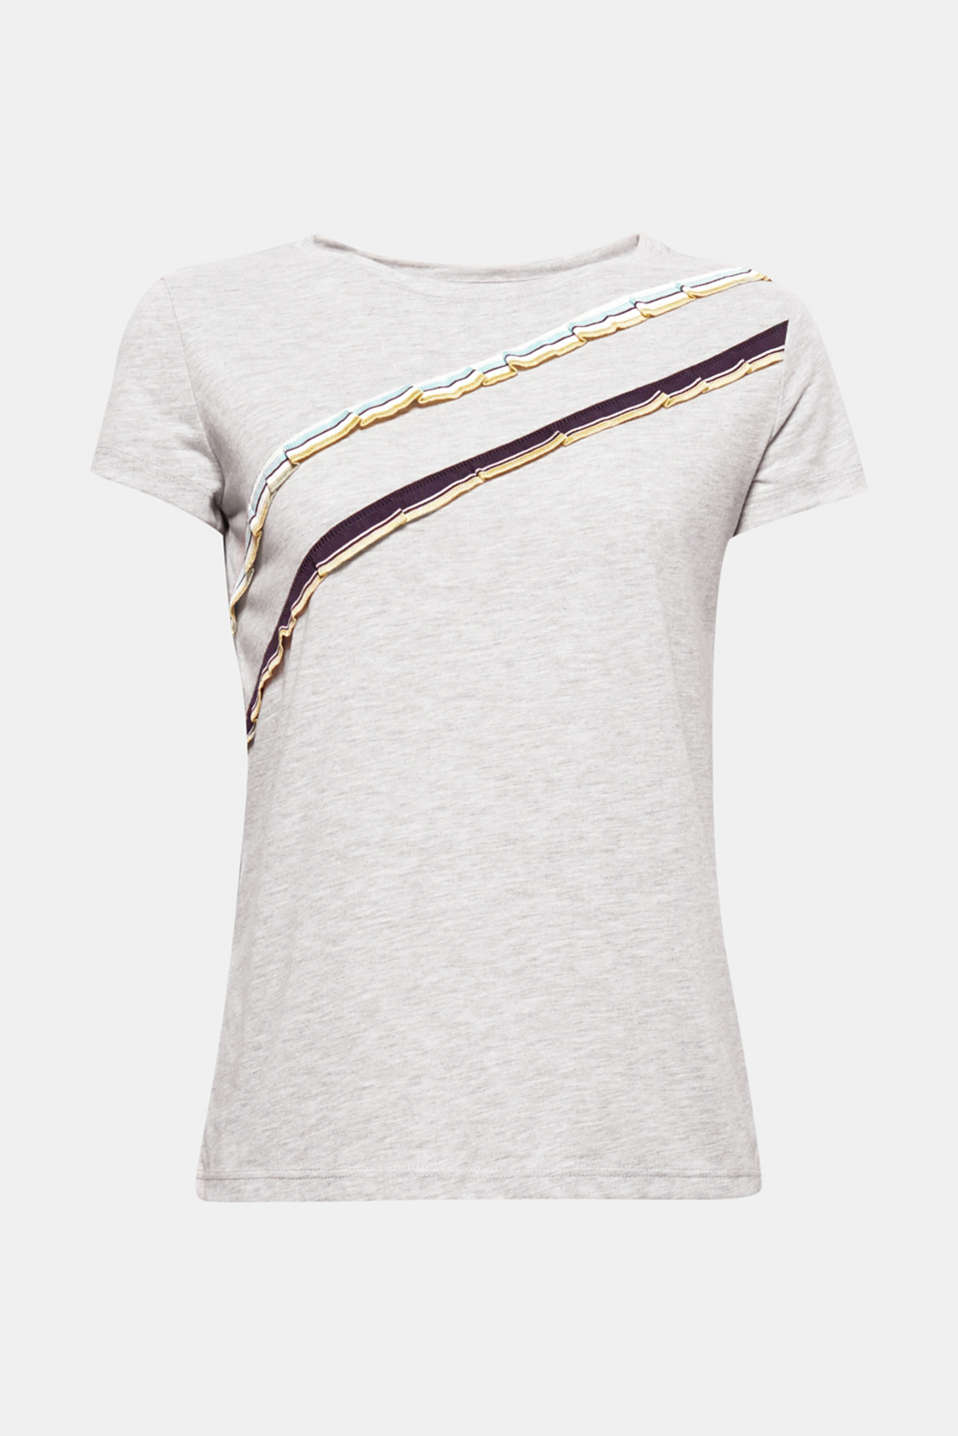 The asymmetric frilled trim in a striped rib knit gives this soft round neck T-shirt its fashionable look.